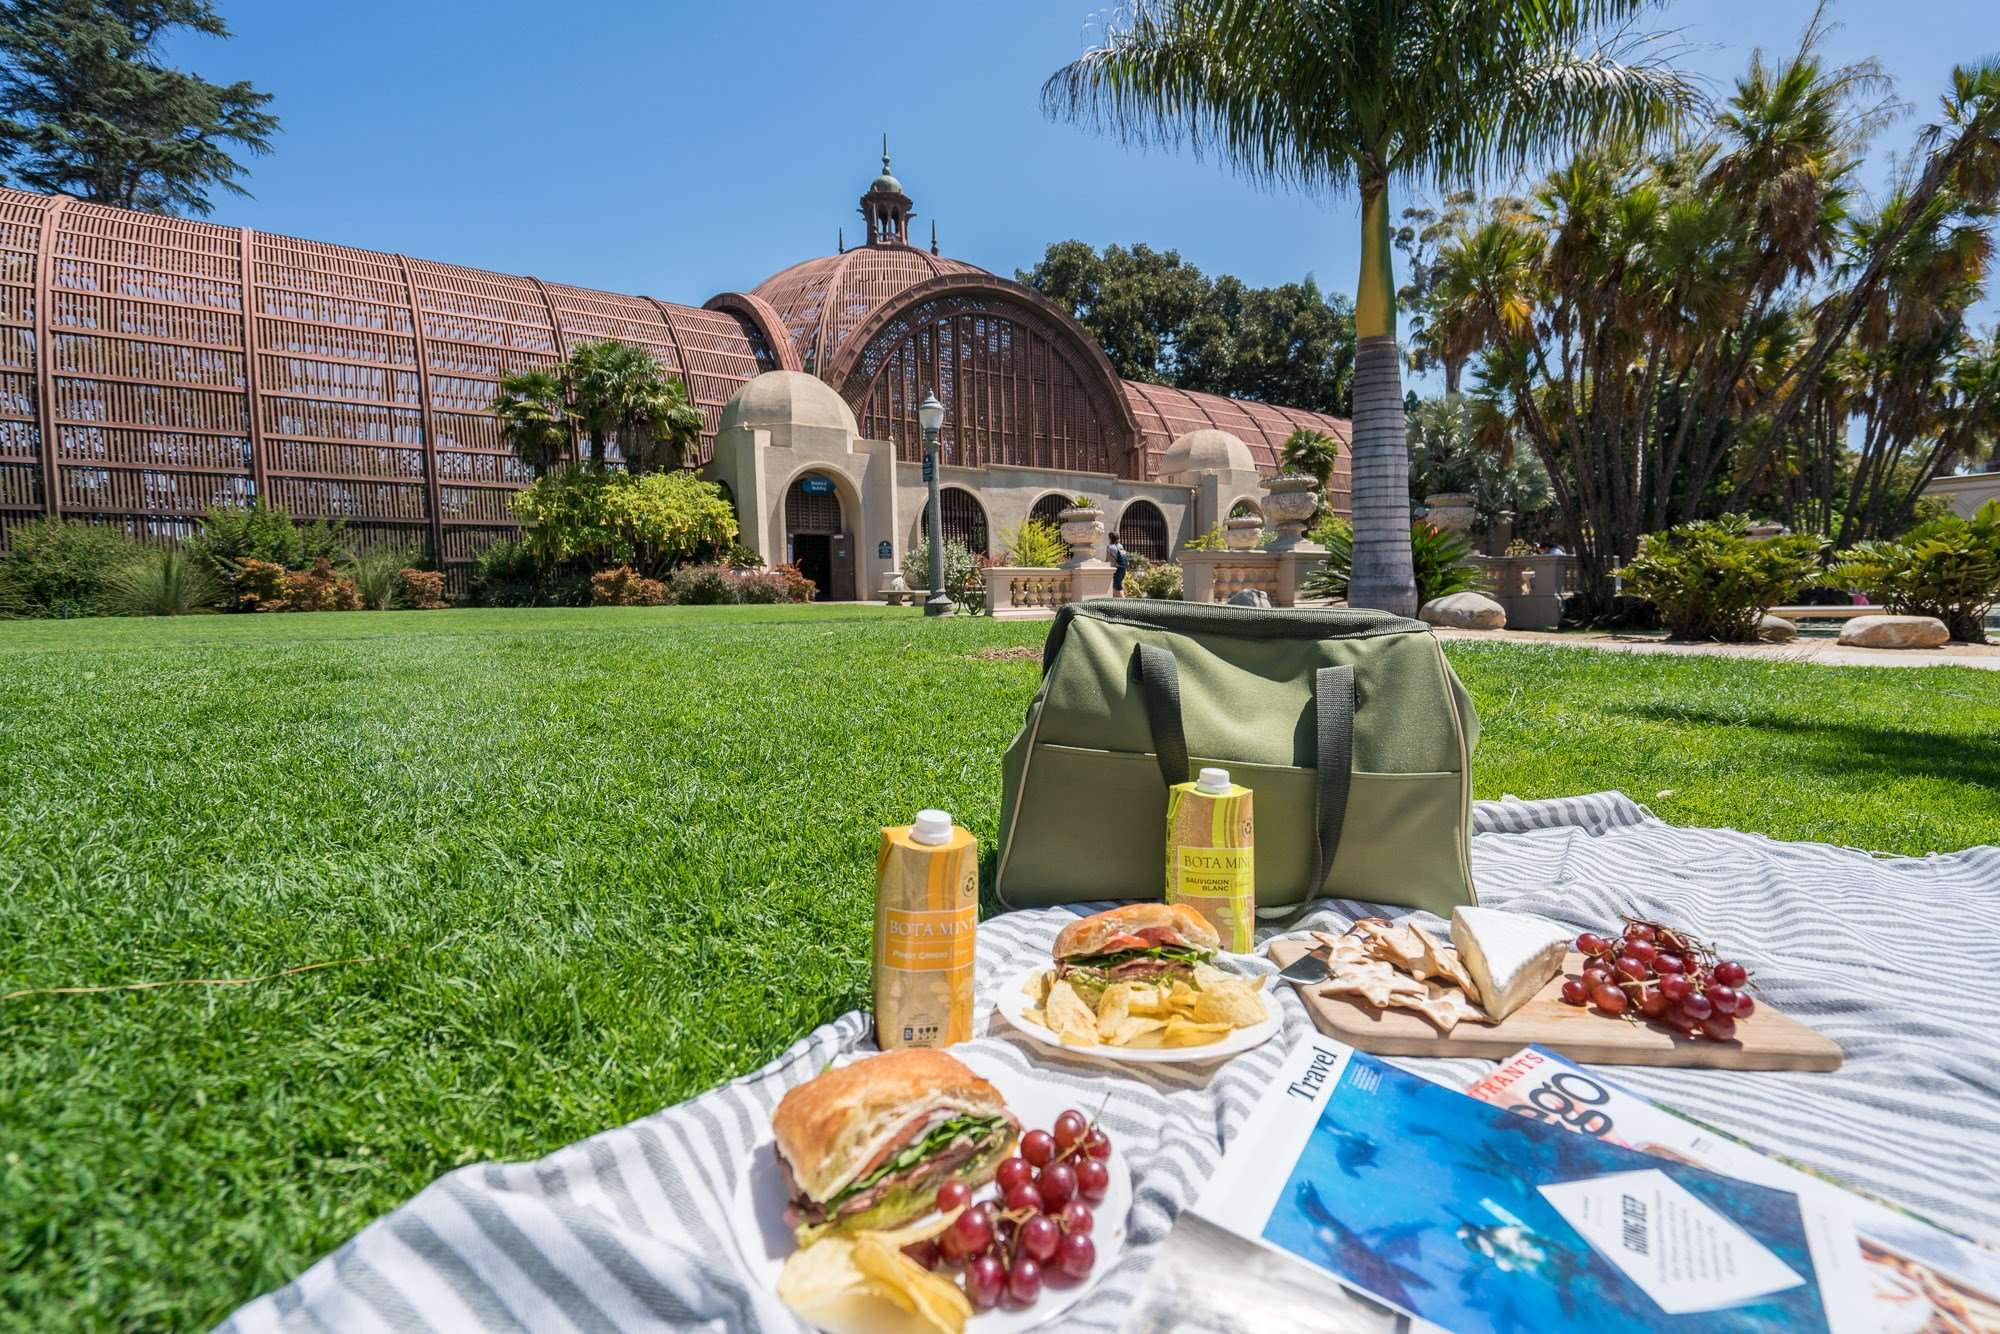 The best places for a picnic in San Diego.